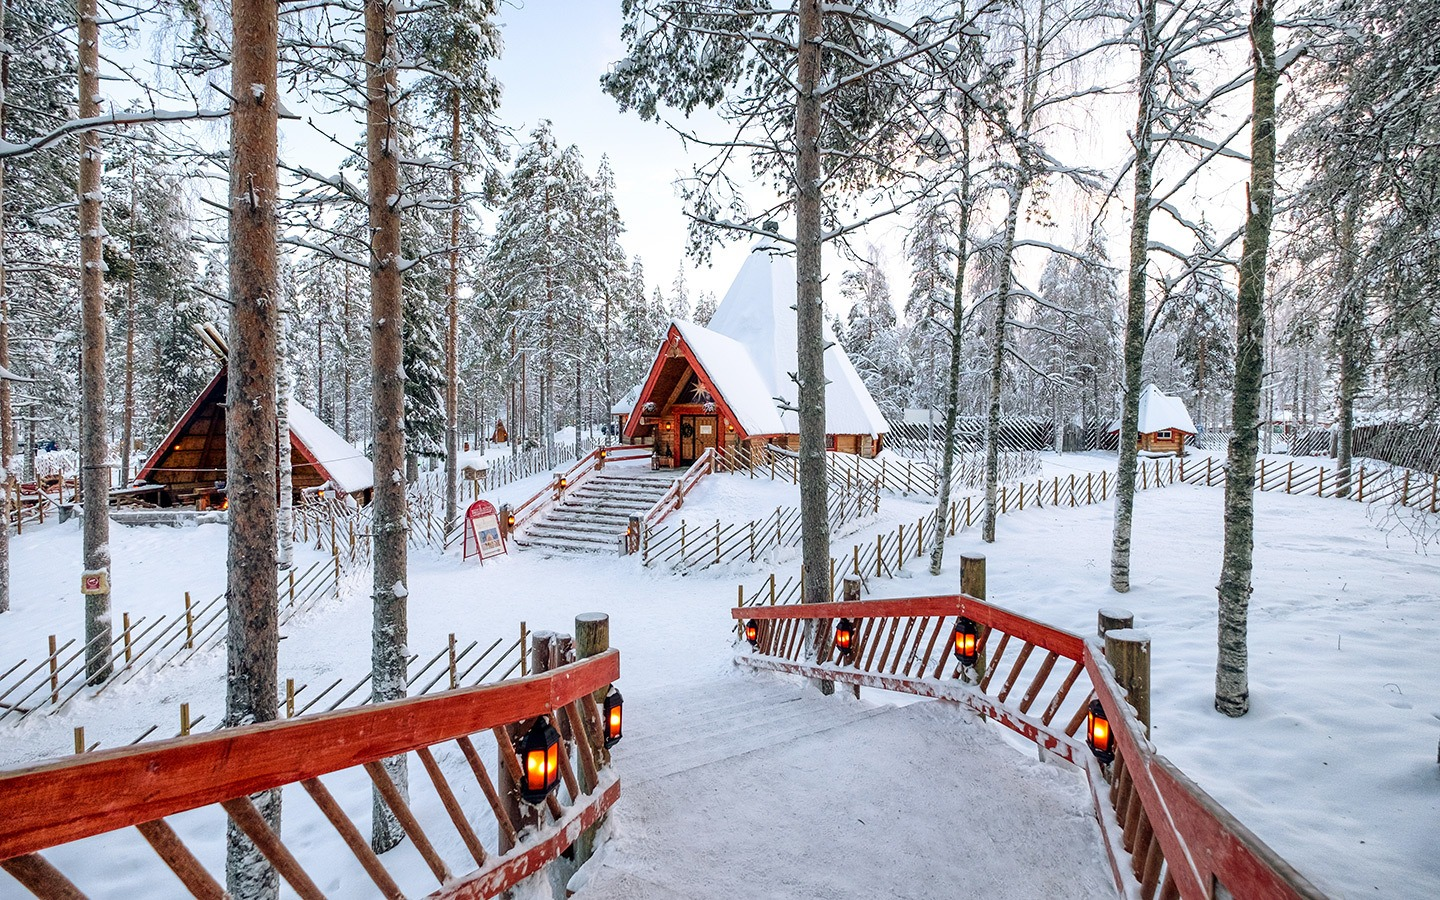 What does it cost? 4 days in Lapland budget breakdown